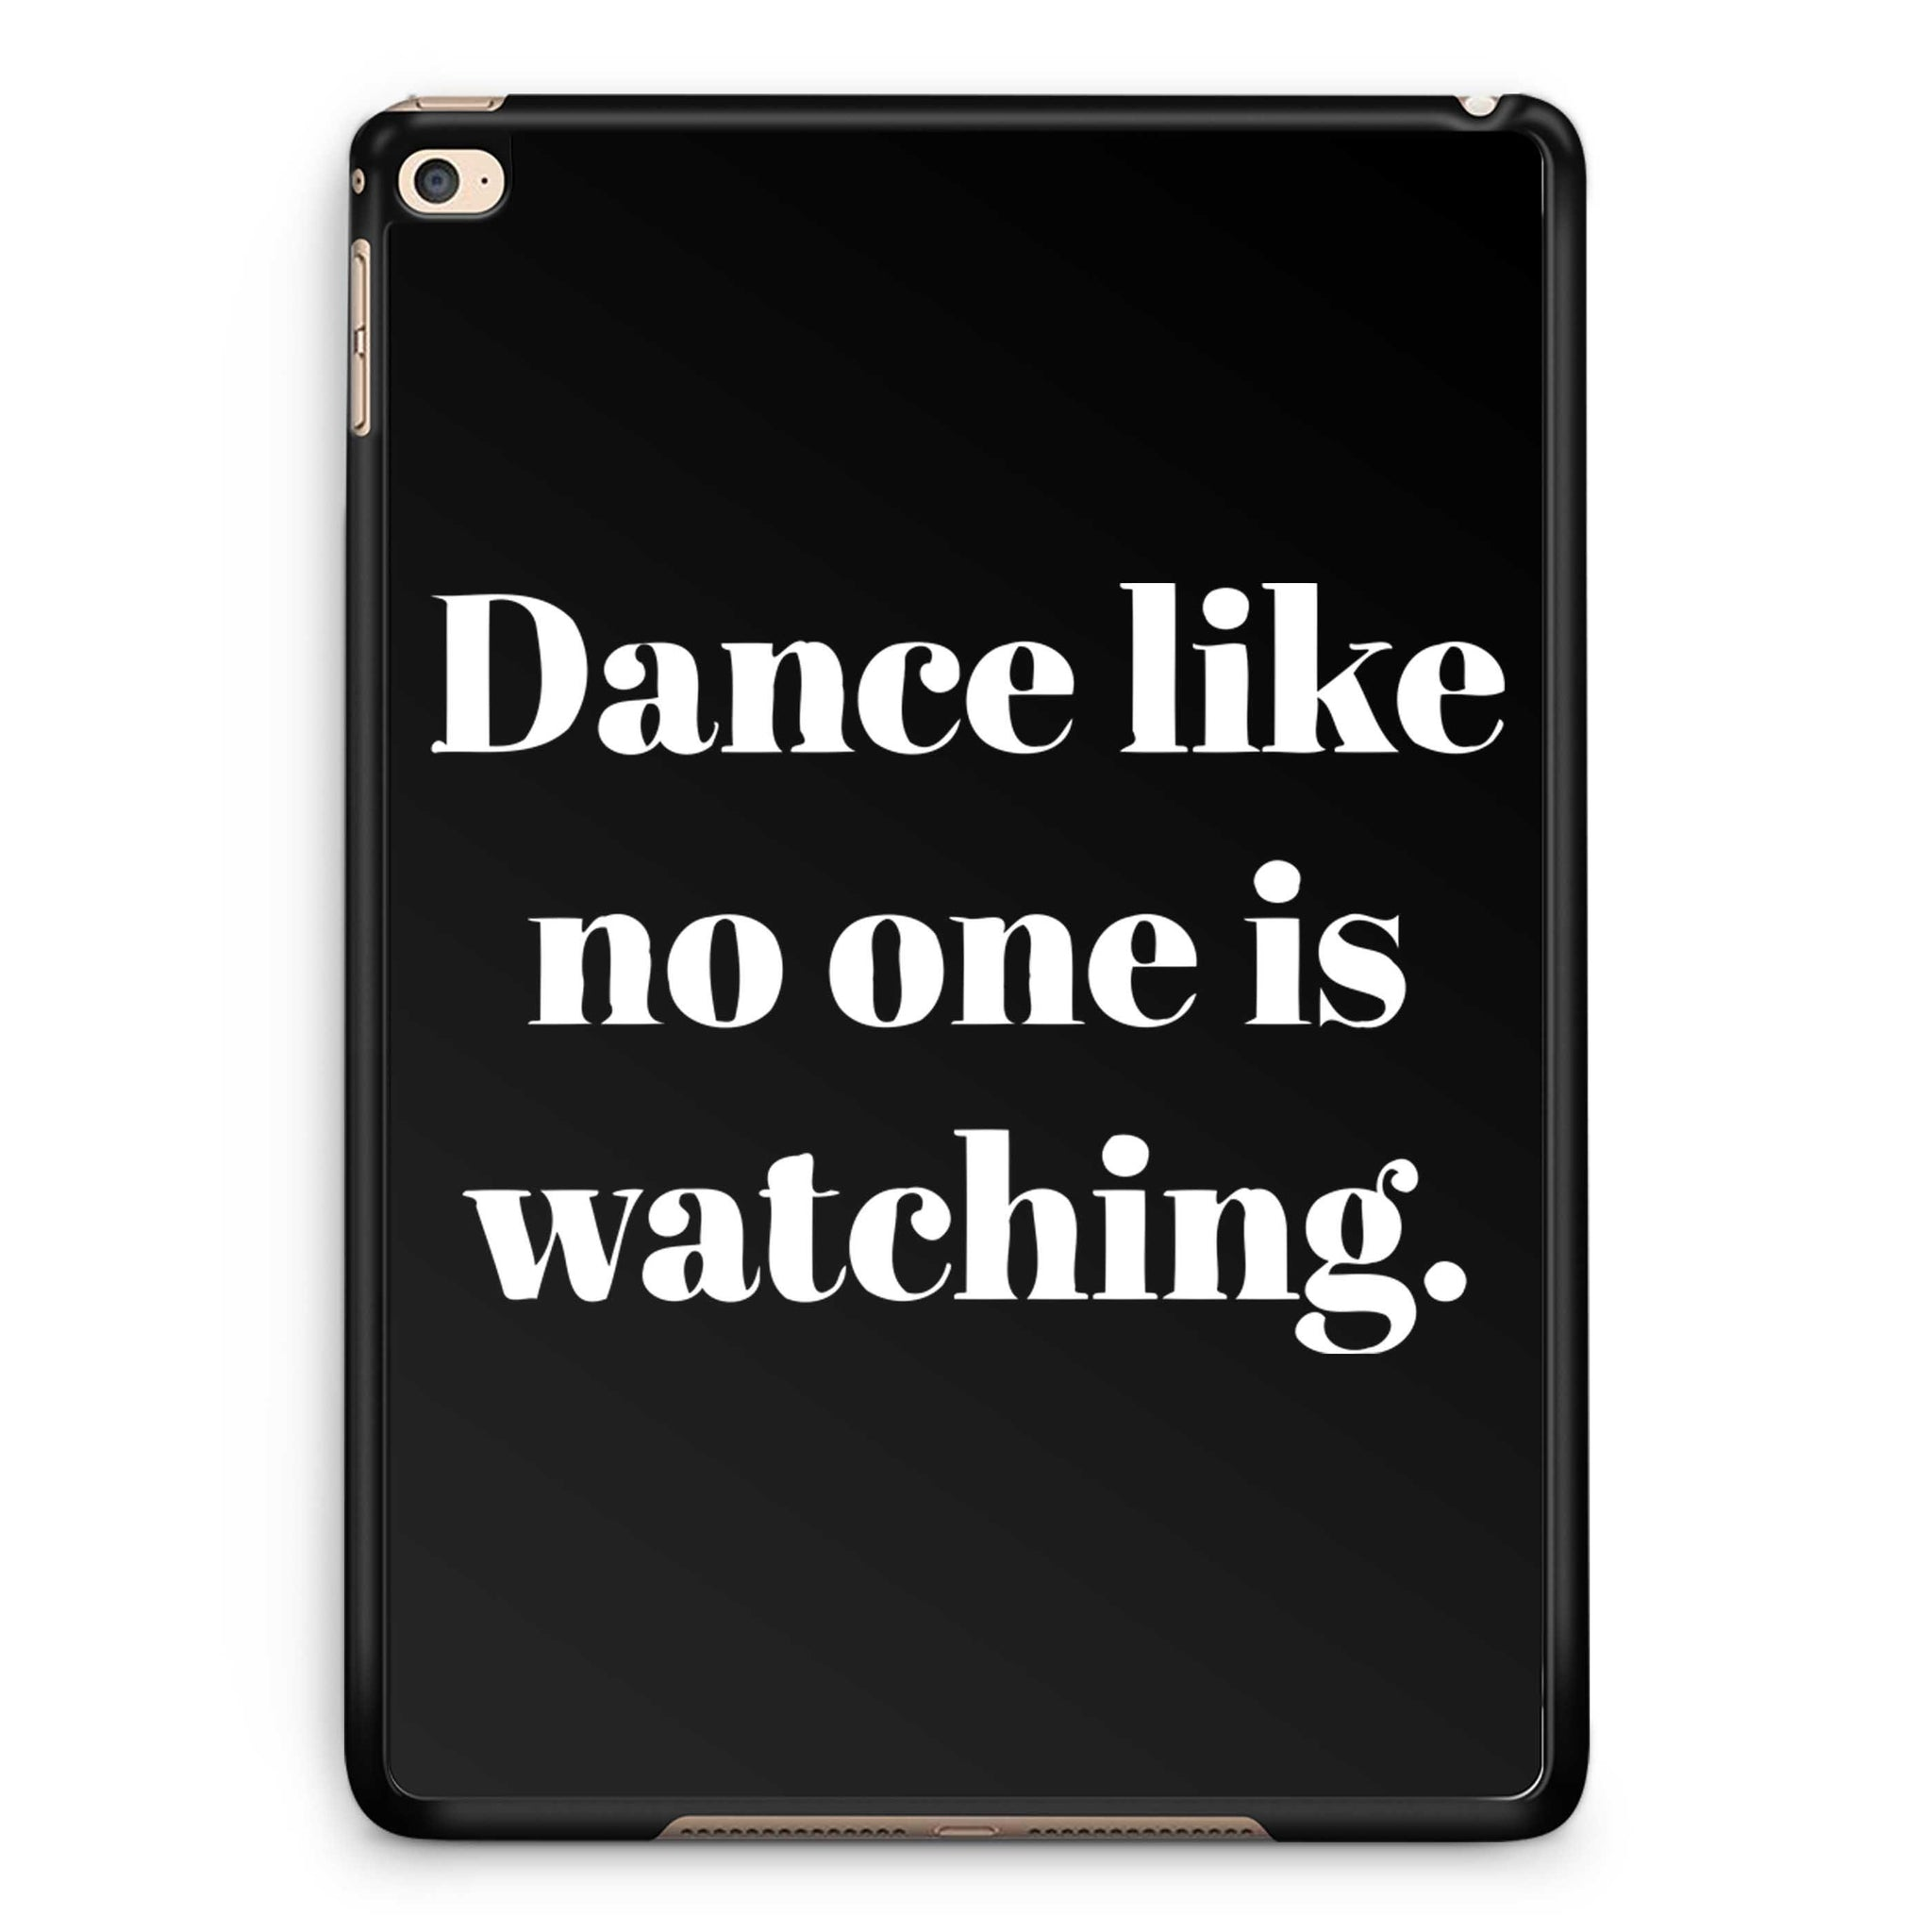 Dance Like No One Is Watching iPad Air 2| iPad 2 / 3 / 4 | iPad Mini / Mini 2 Case